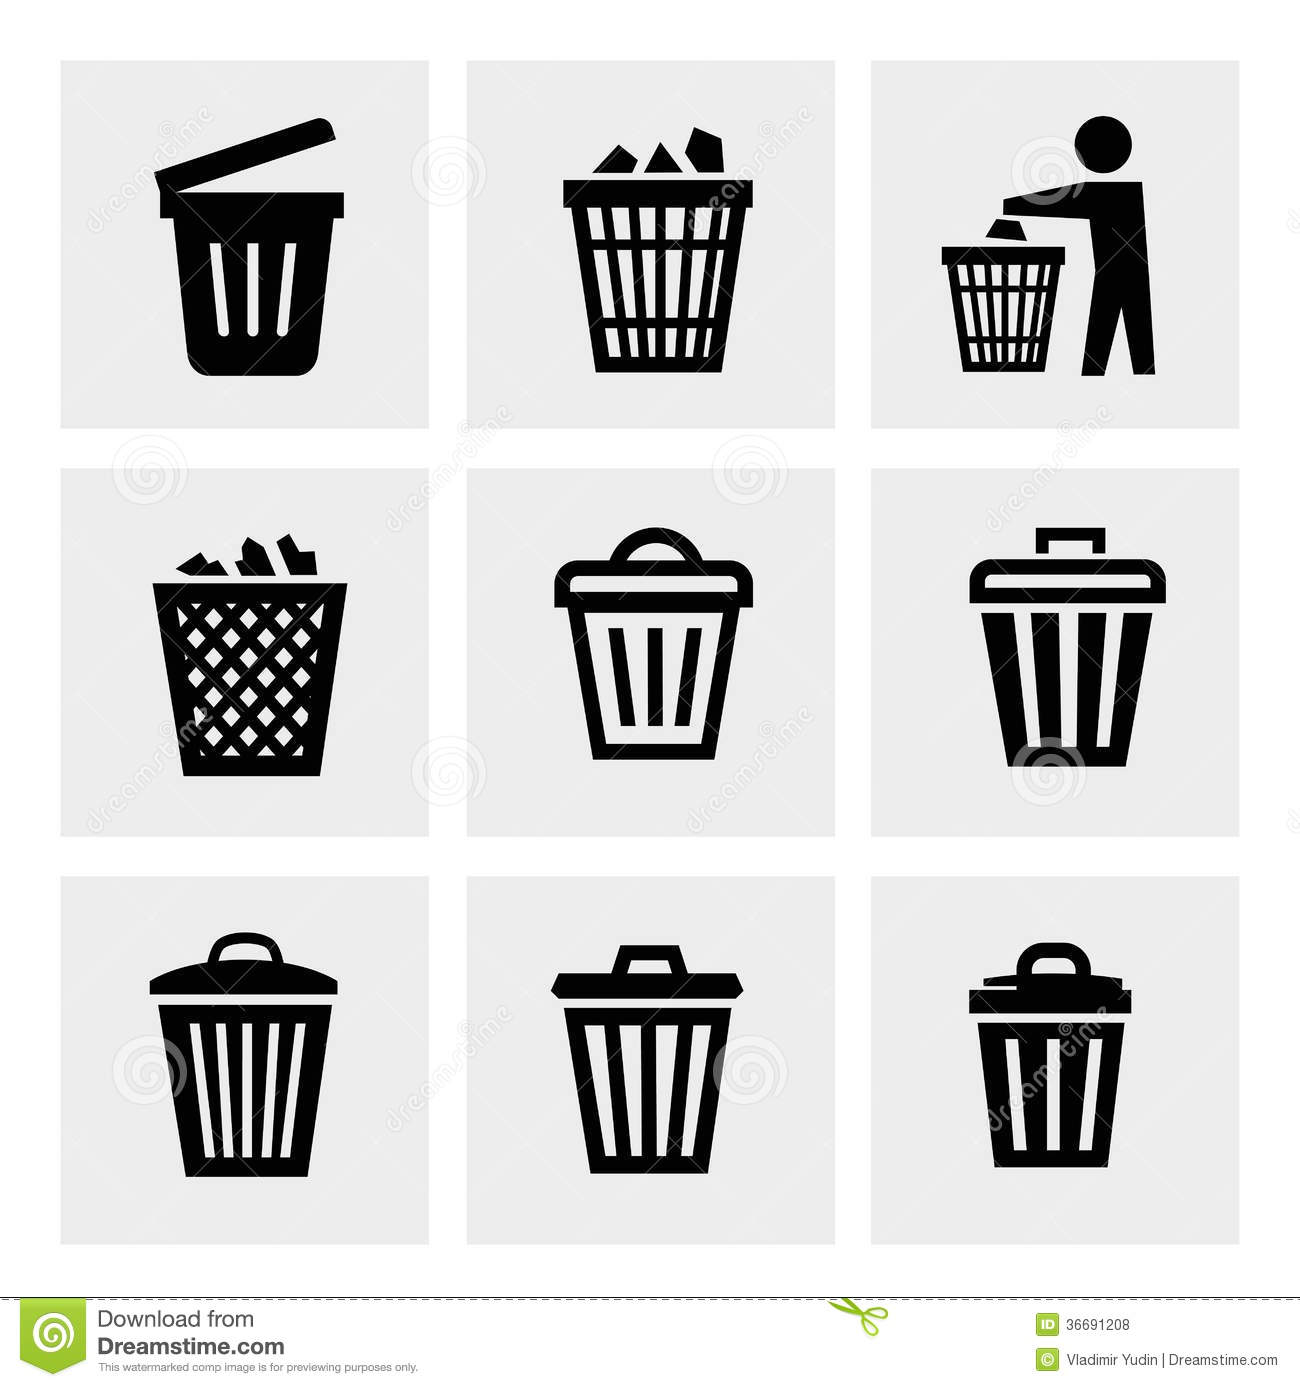 Trash Can Icon Royalty Free Stock Photos - Image: 36691208